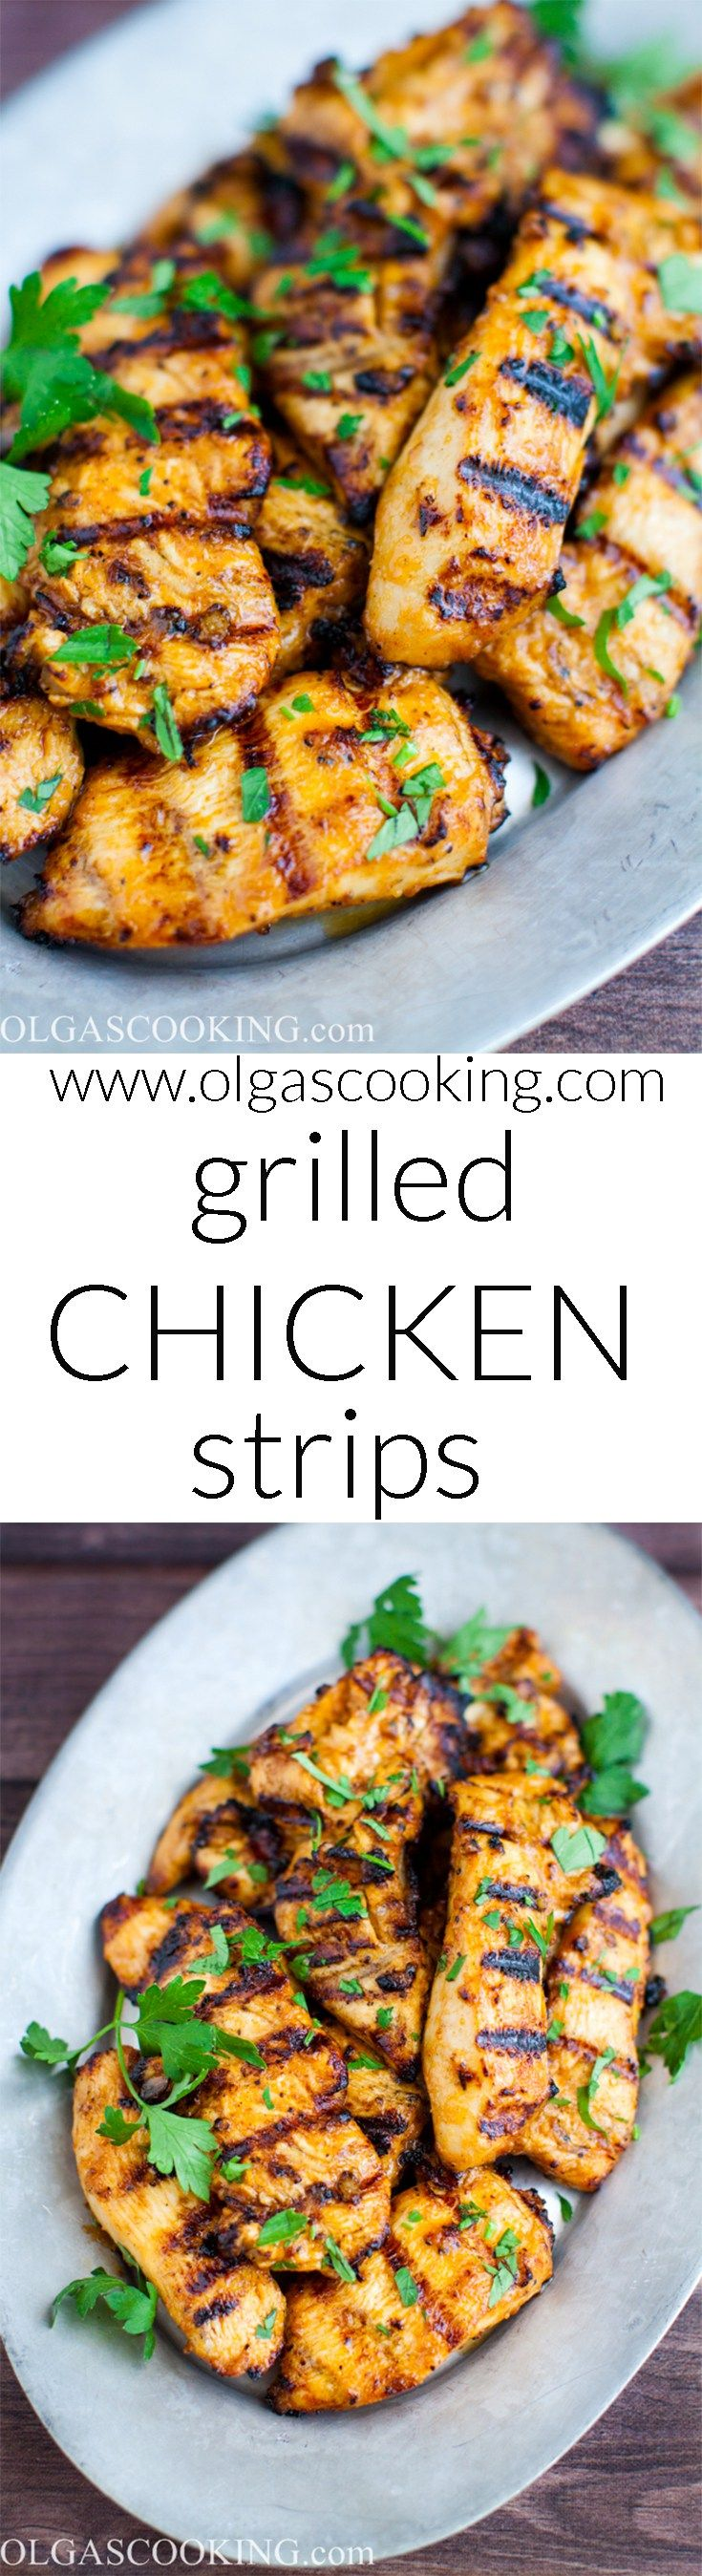 Quick and Juicy! Grilled Chicken Strips